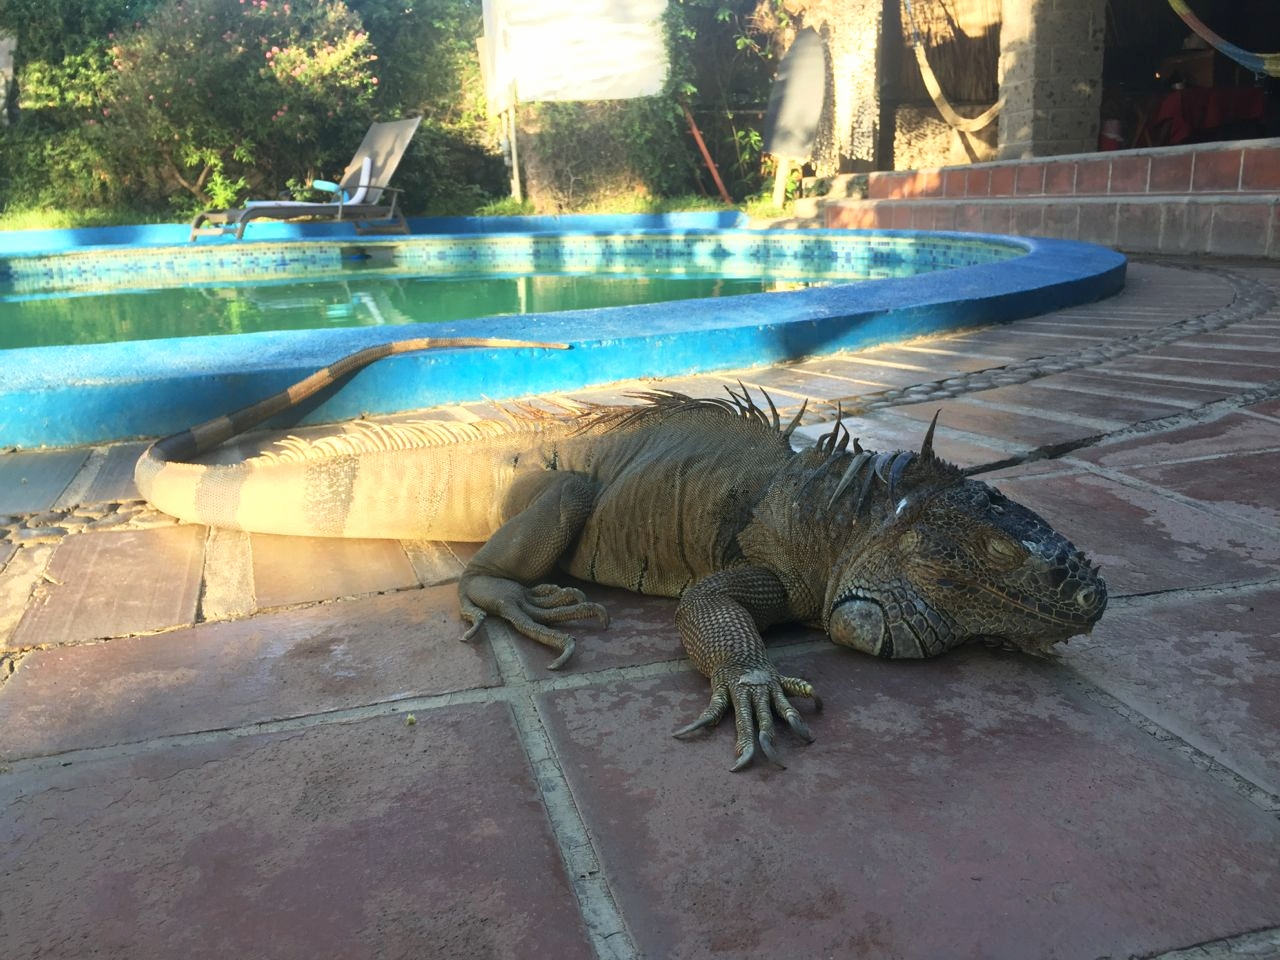 Paco the giant iguana, hanging by the pool